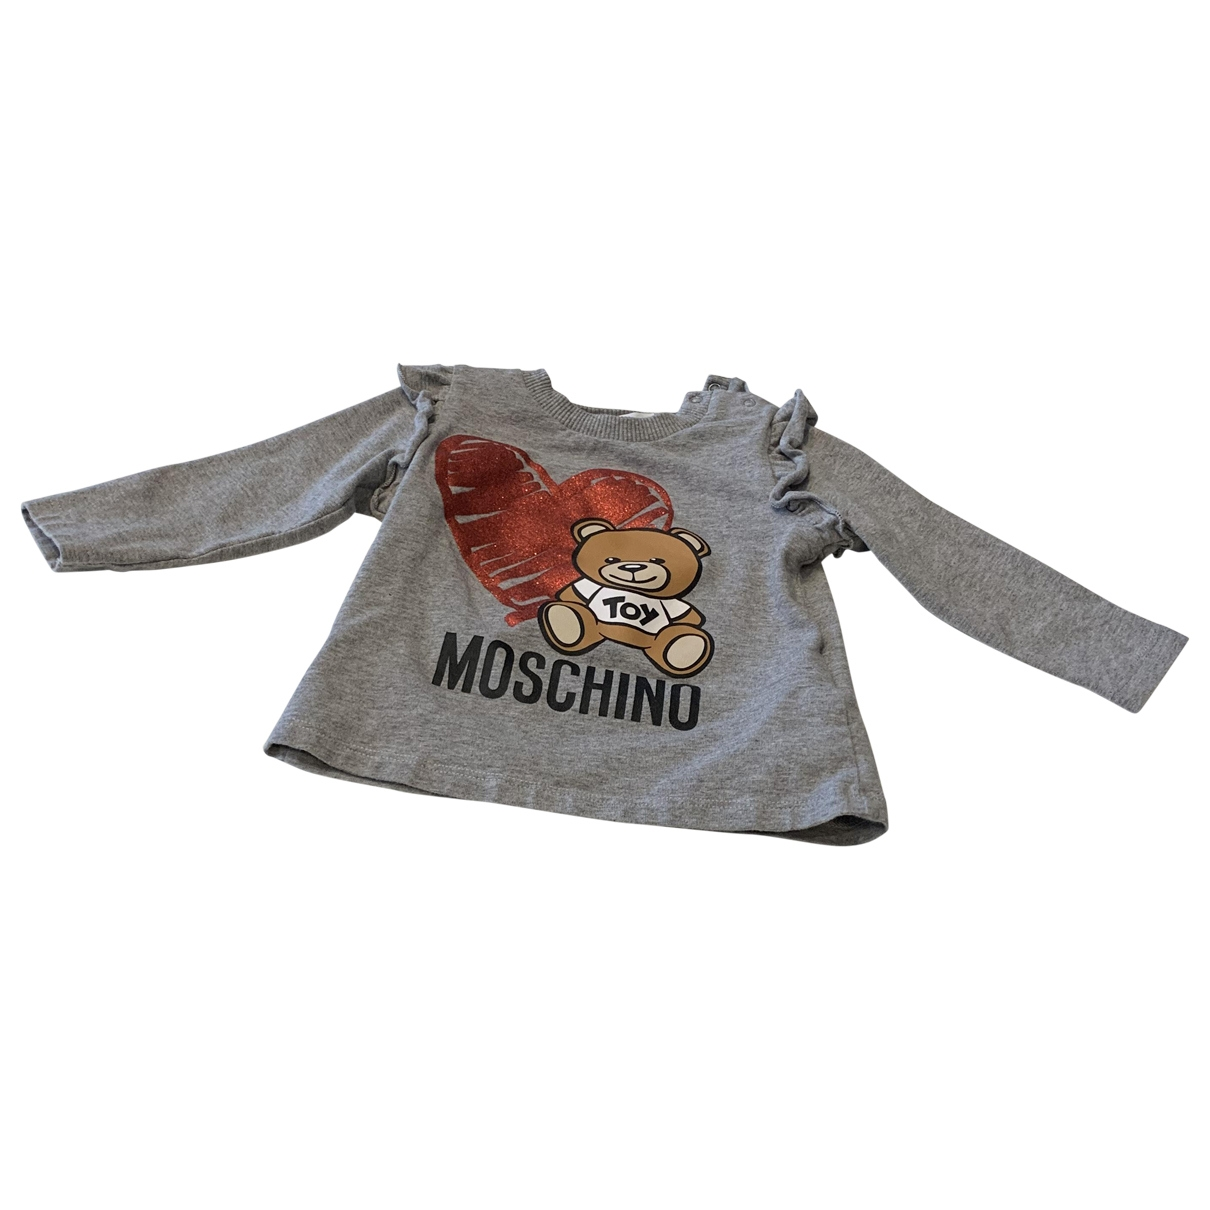 Moschino \N Grey Cotton  top for Kids 12 months - up to 74cm FR